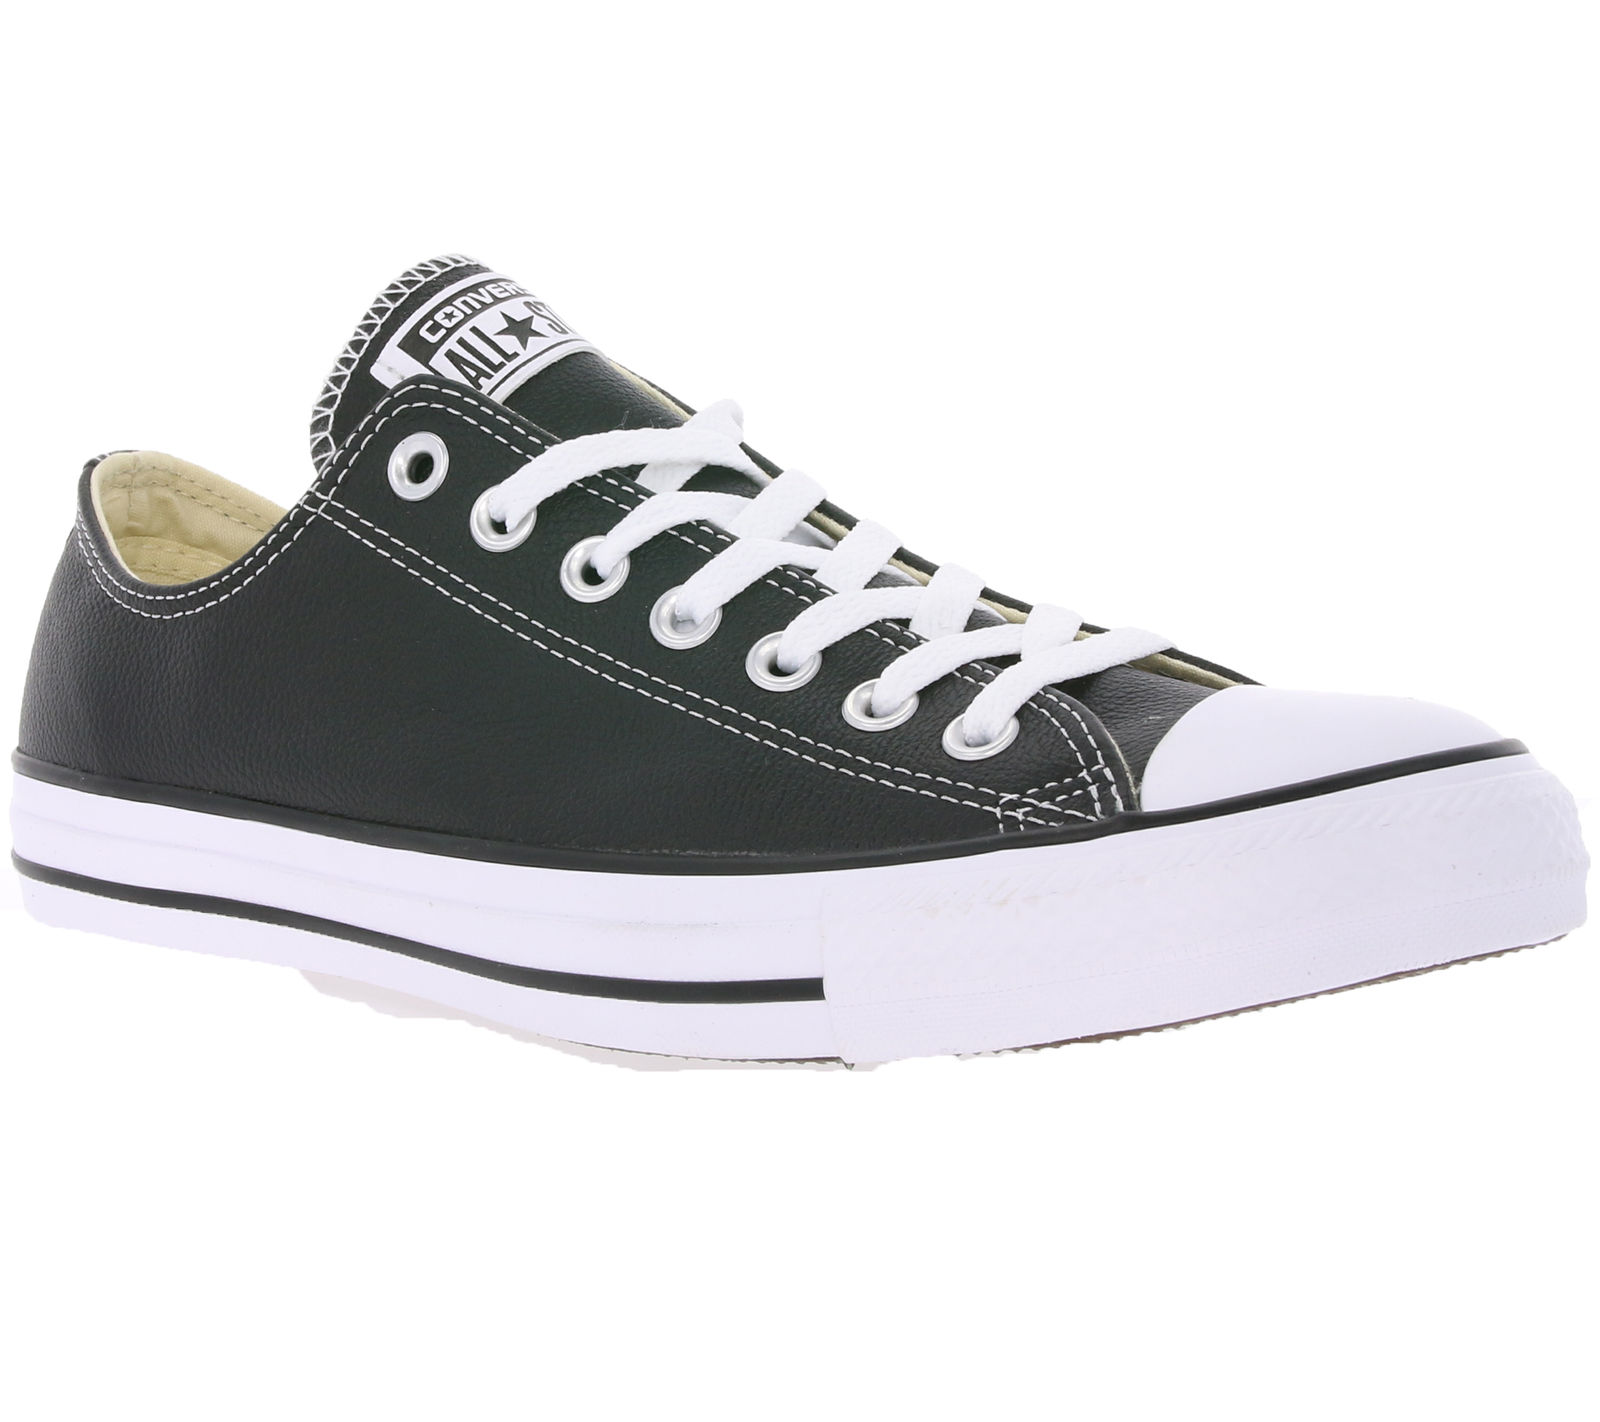 40% OFF   CONVERSE Leather CT All Star Ox Turnschuhe   UK 11 & 12